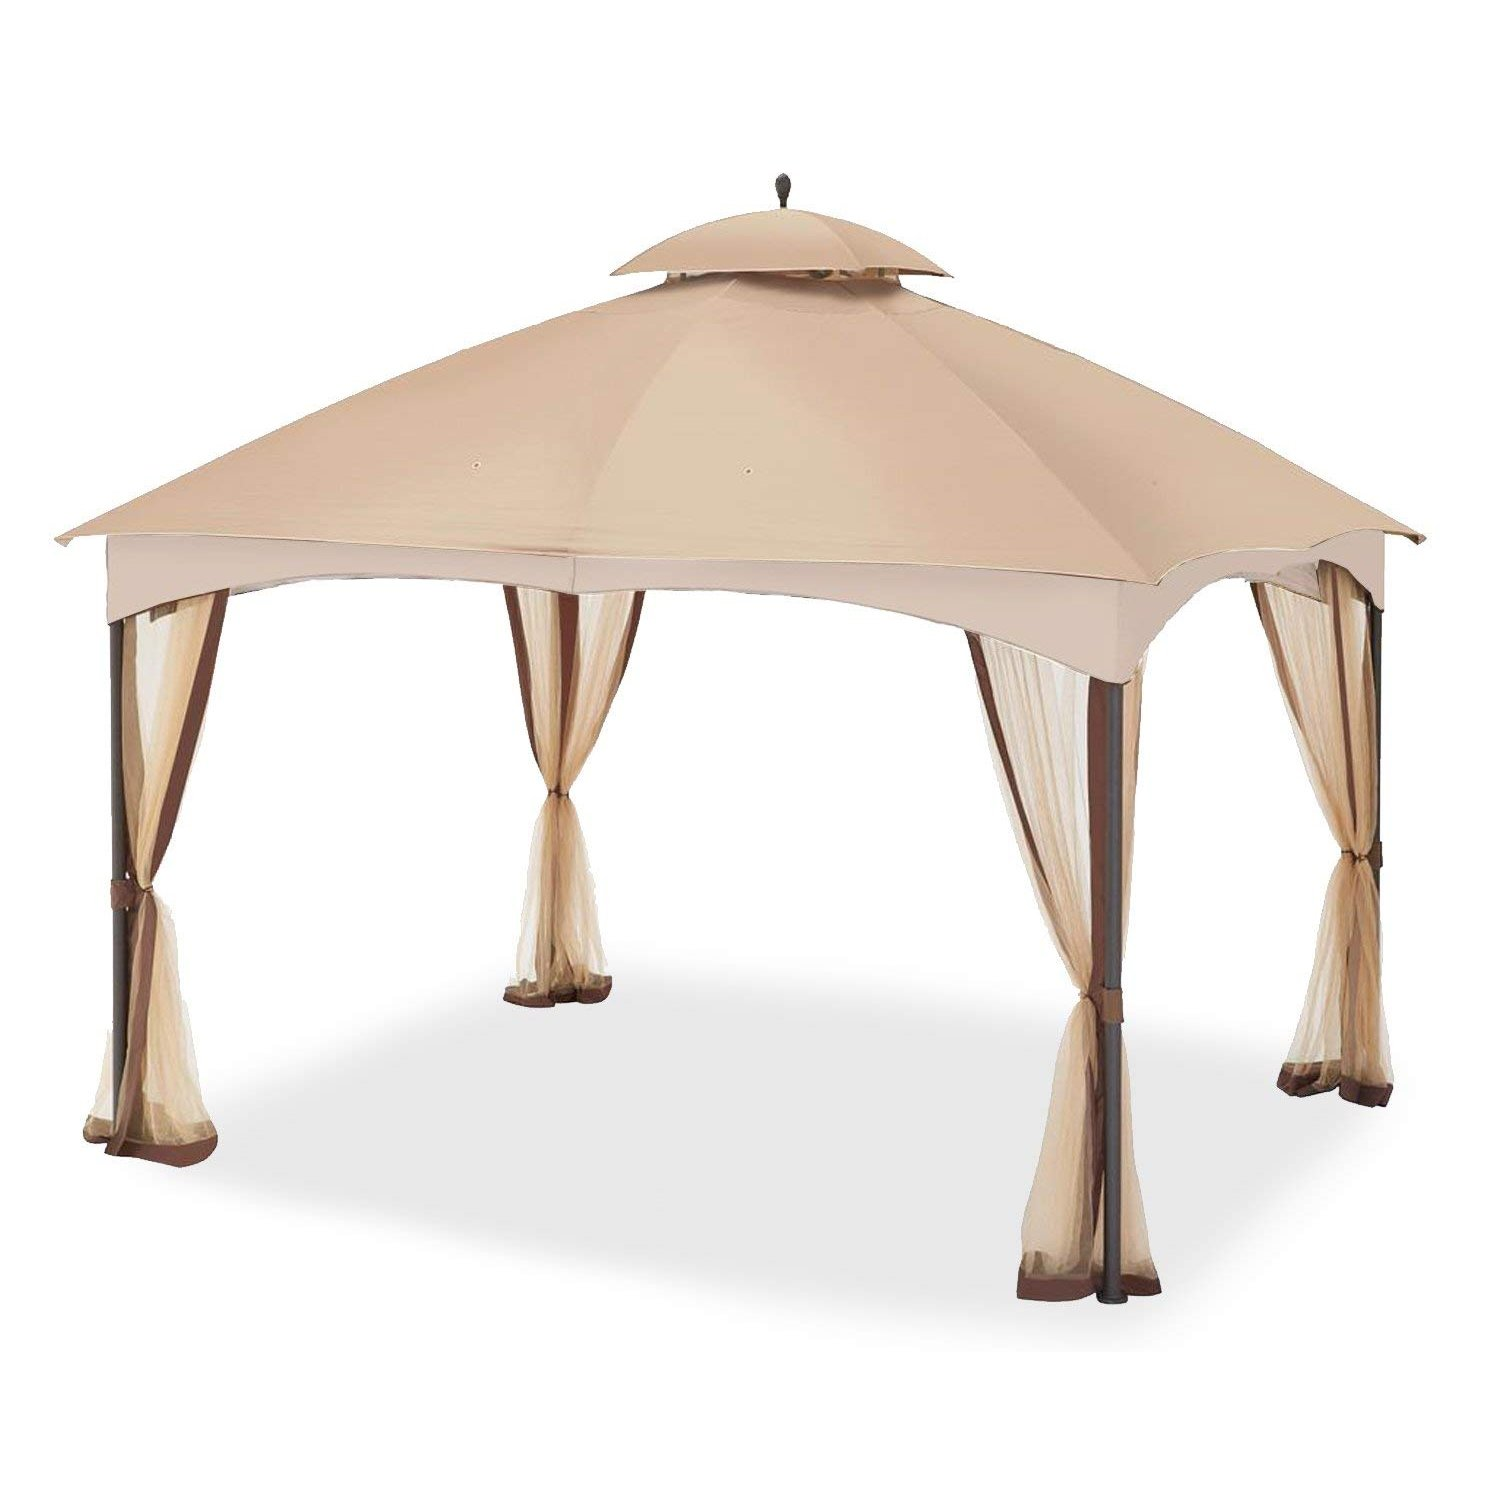 Garden Winds Replacement Canopy Top Cover for The Massillon Biscayne 10' x 12' Gazebo - 350